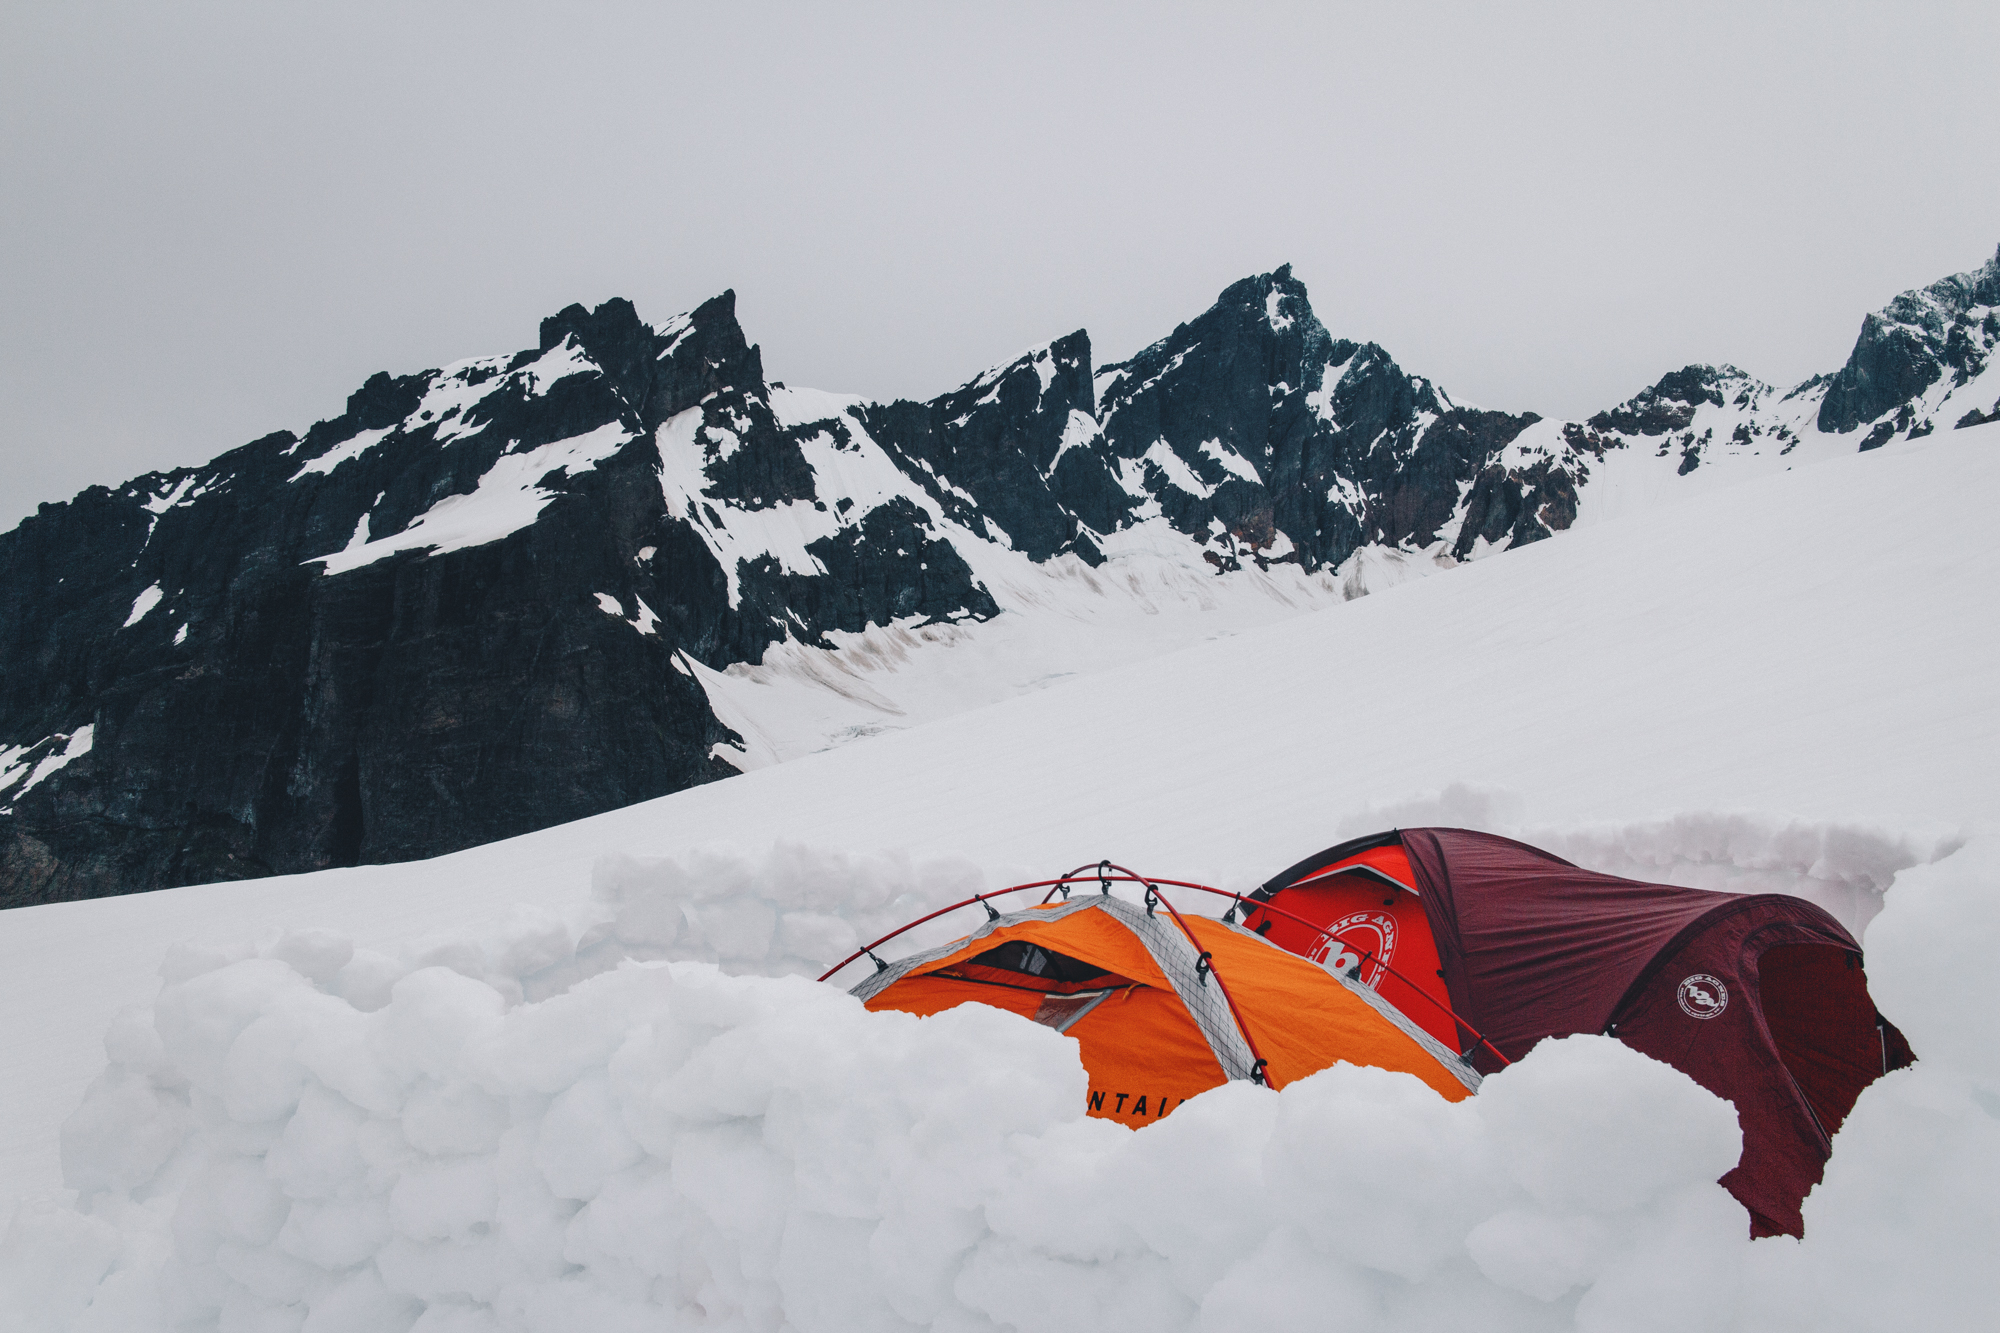 At base camp on Mt. Baker, we built a great wall that fell over a million times.